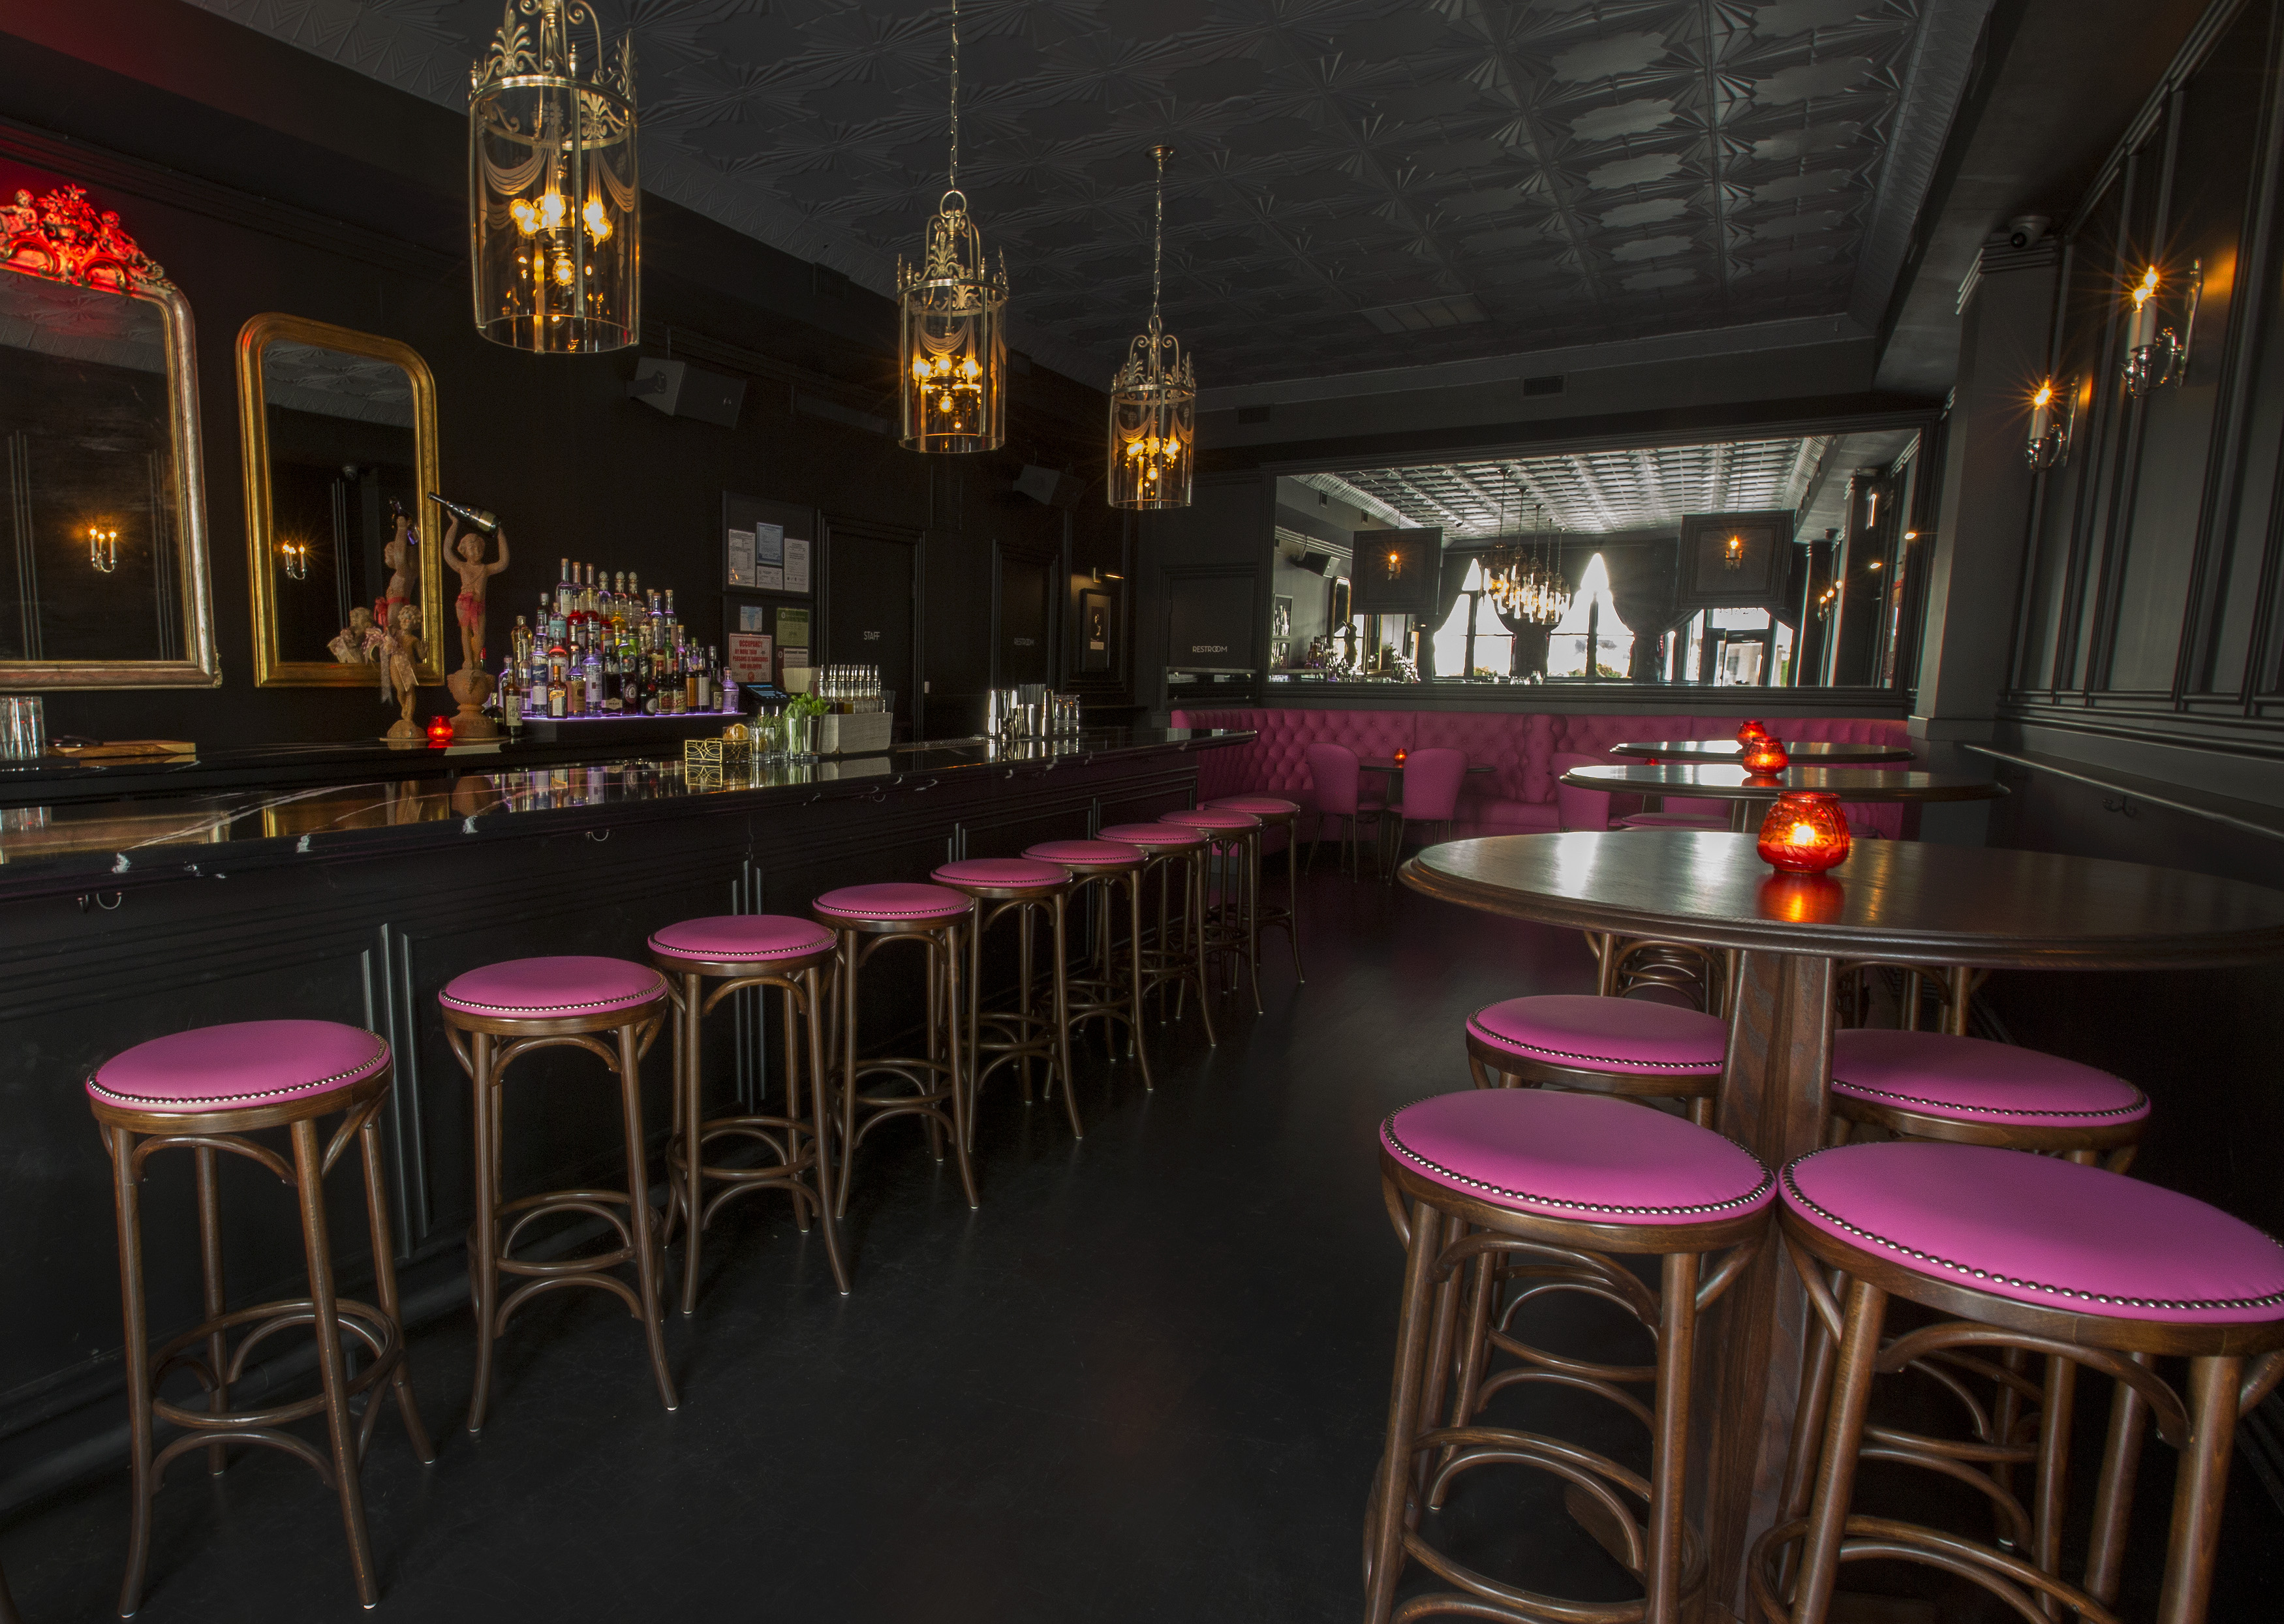 A bar with black walls, vintage gold mirrors and light fixtures, plus pink stools.